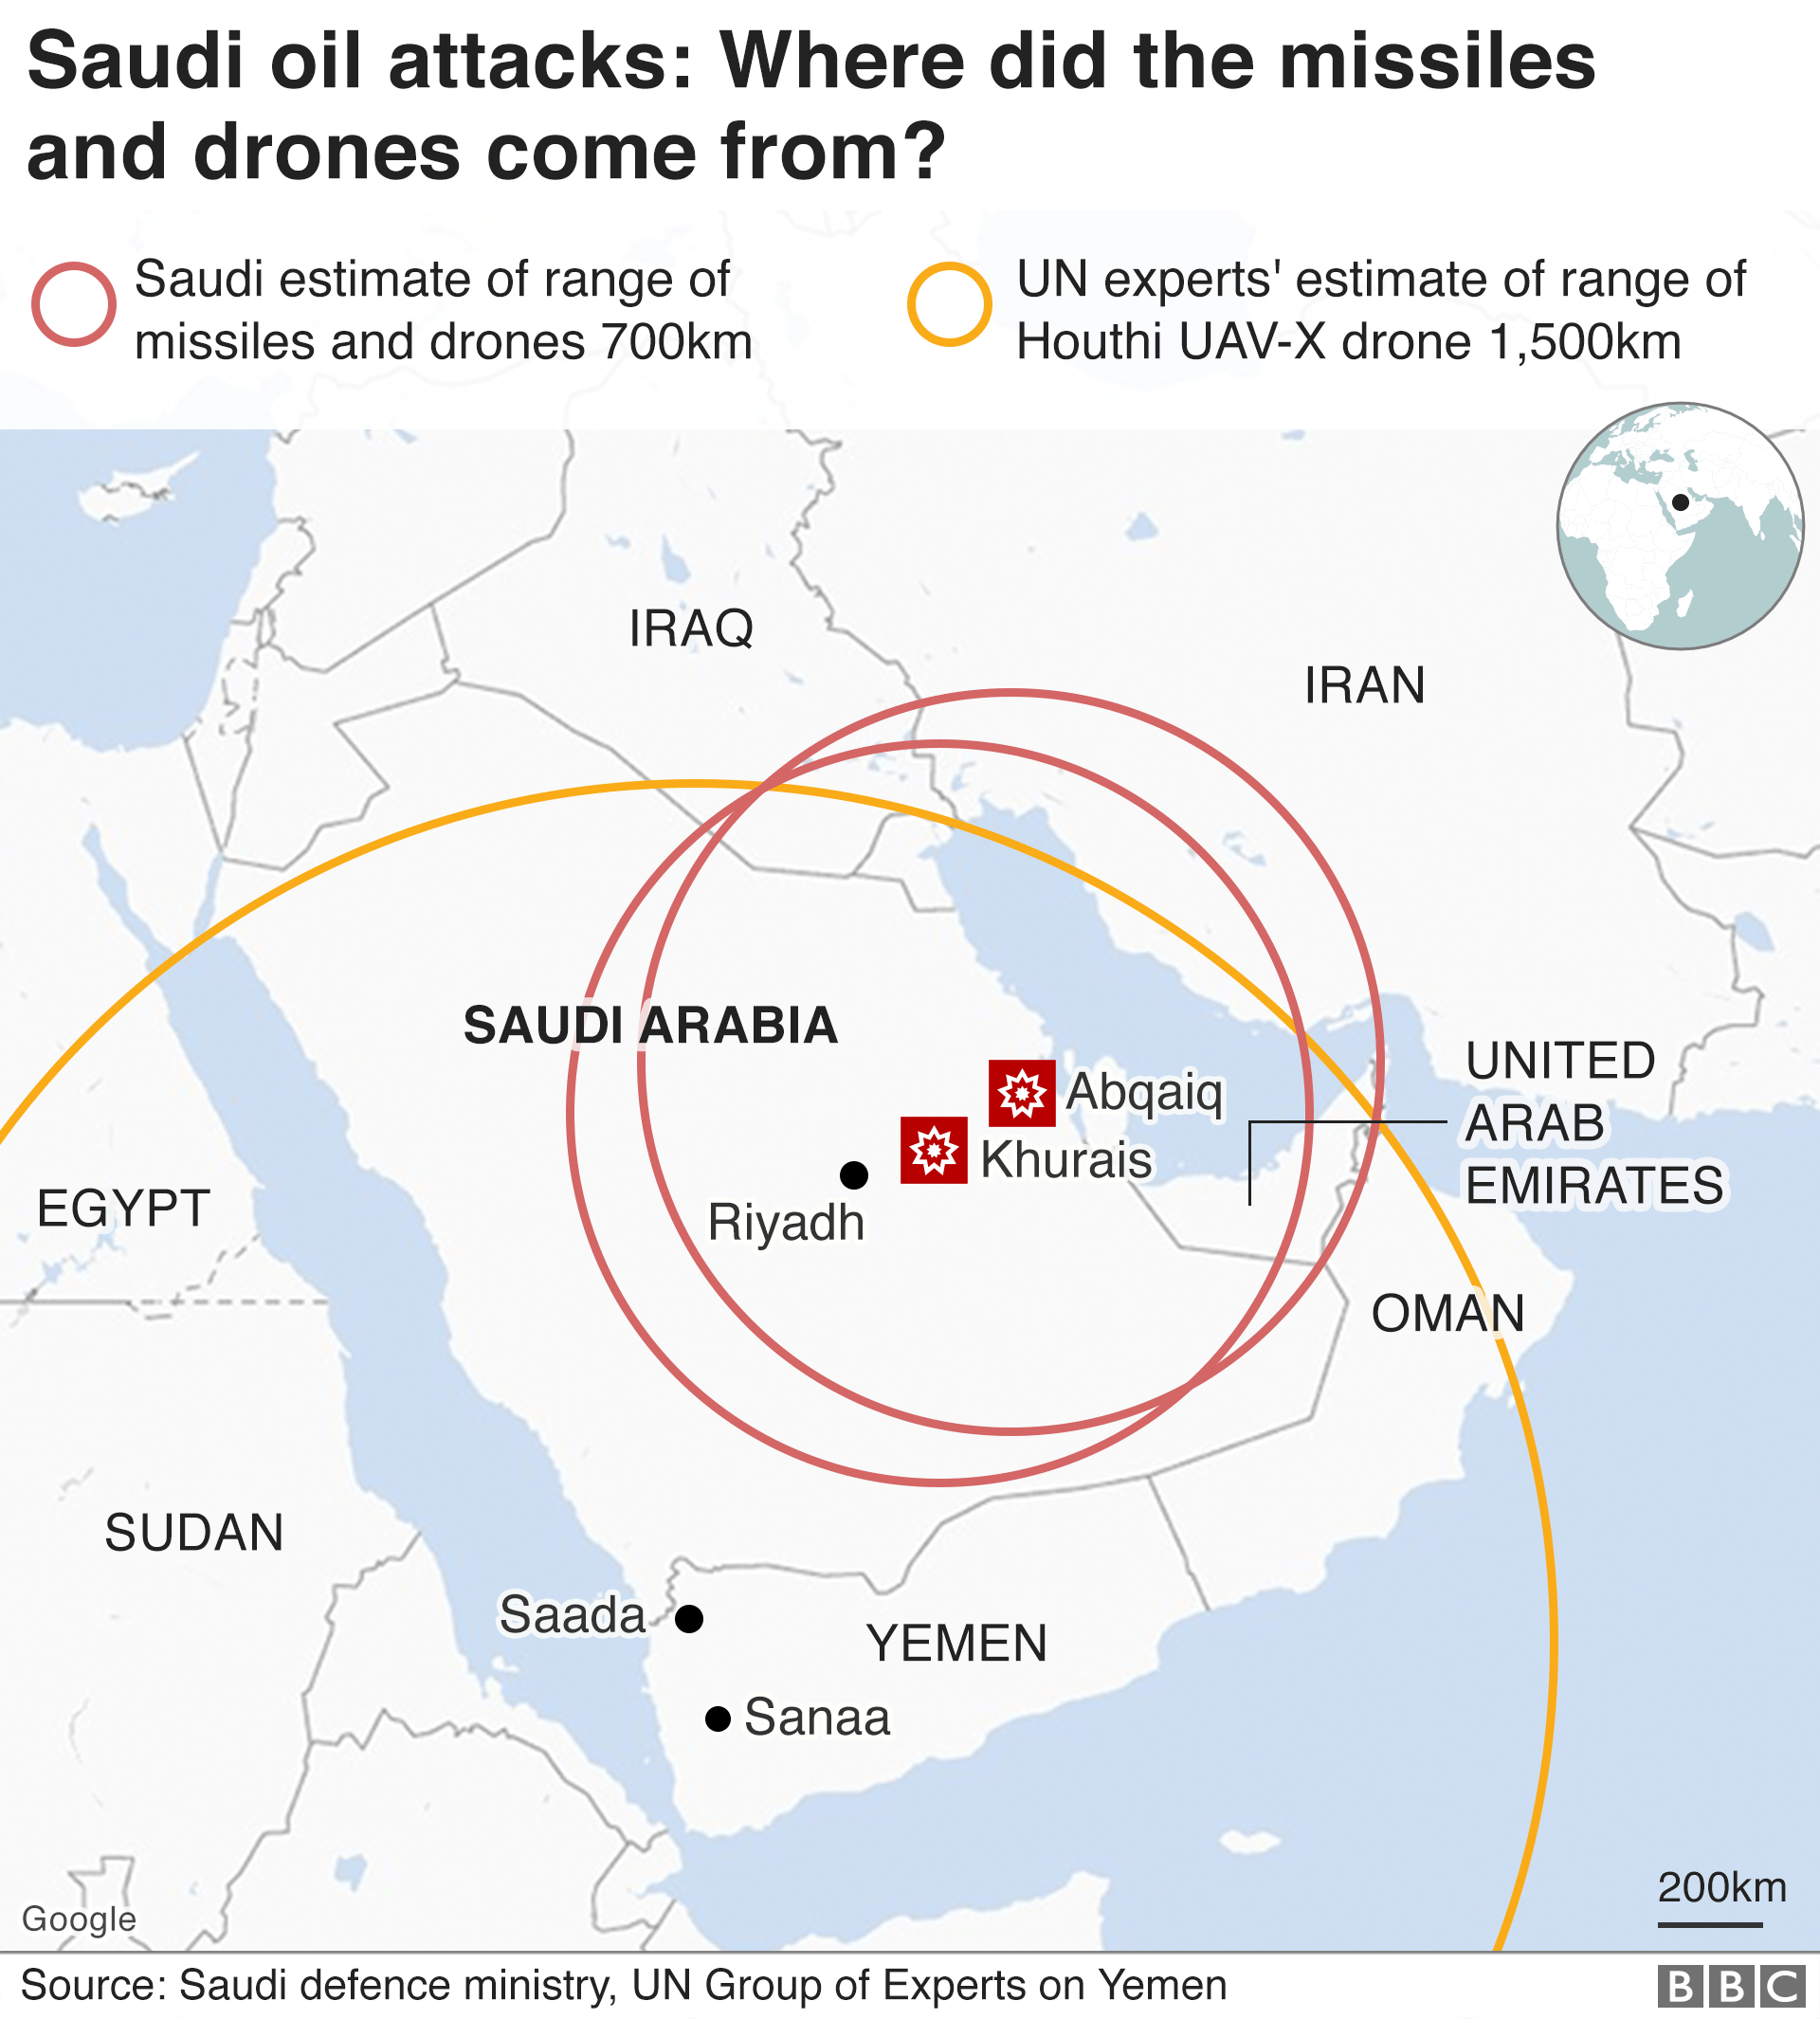 Saudi oil attacks: Where did the missiles and drones come from?